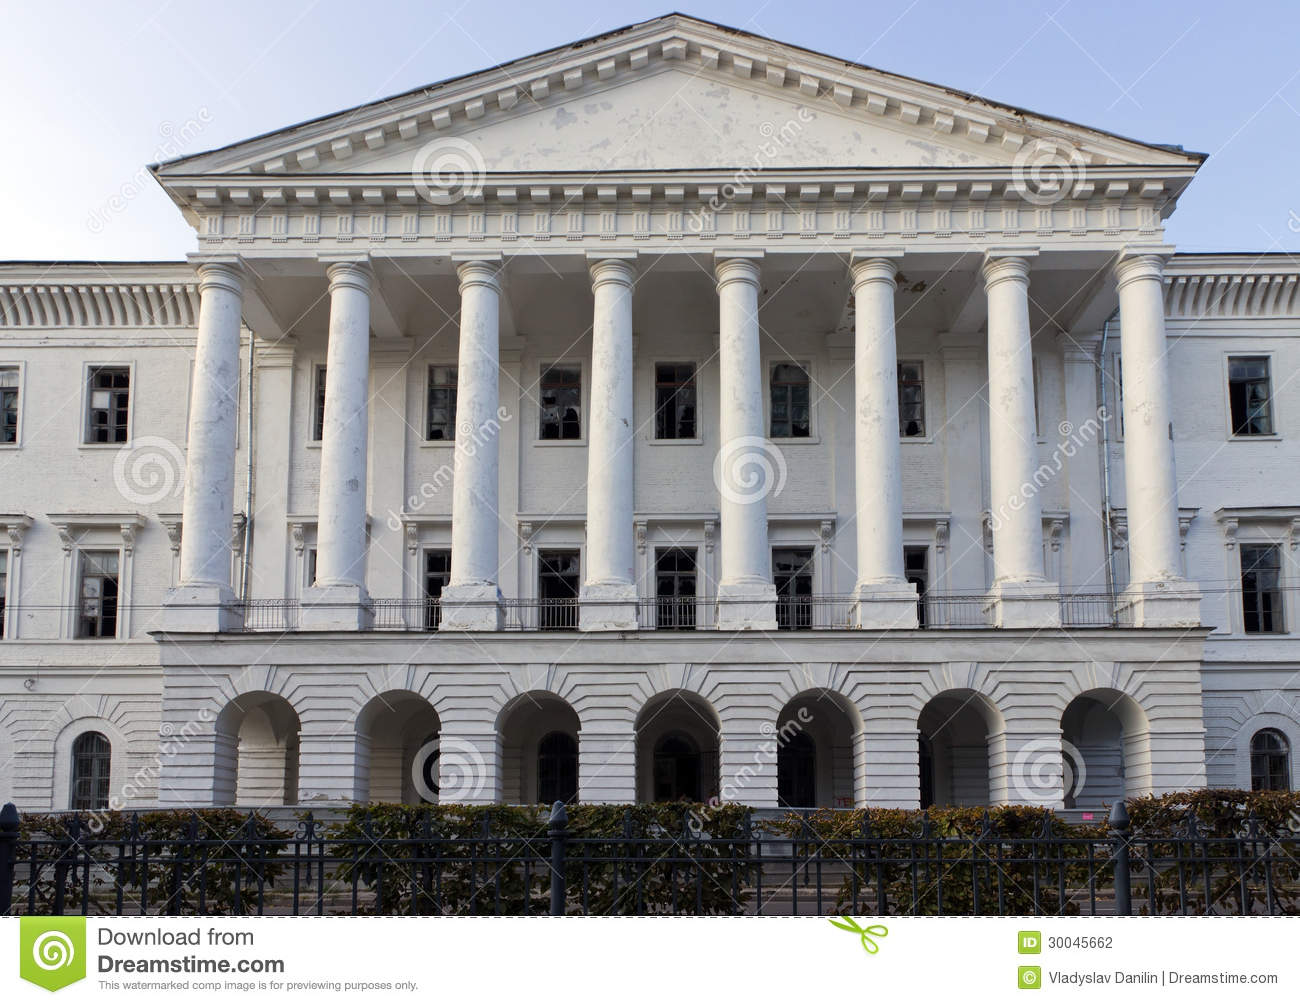 White house of the pillar stock photography image 30045662 for How to build a house on pillars